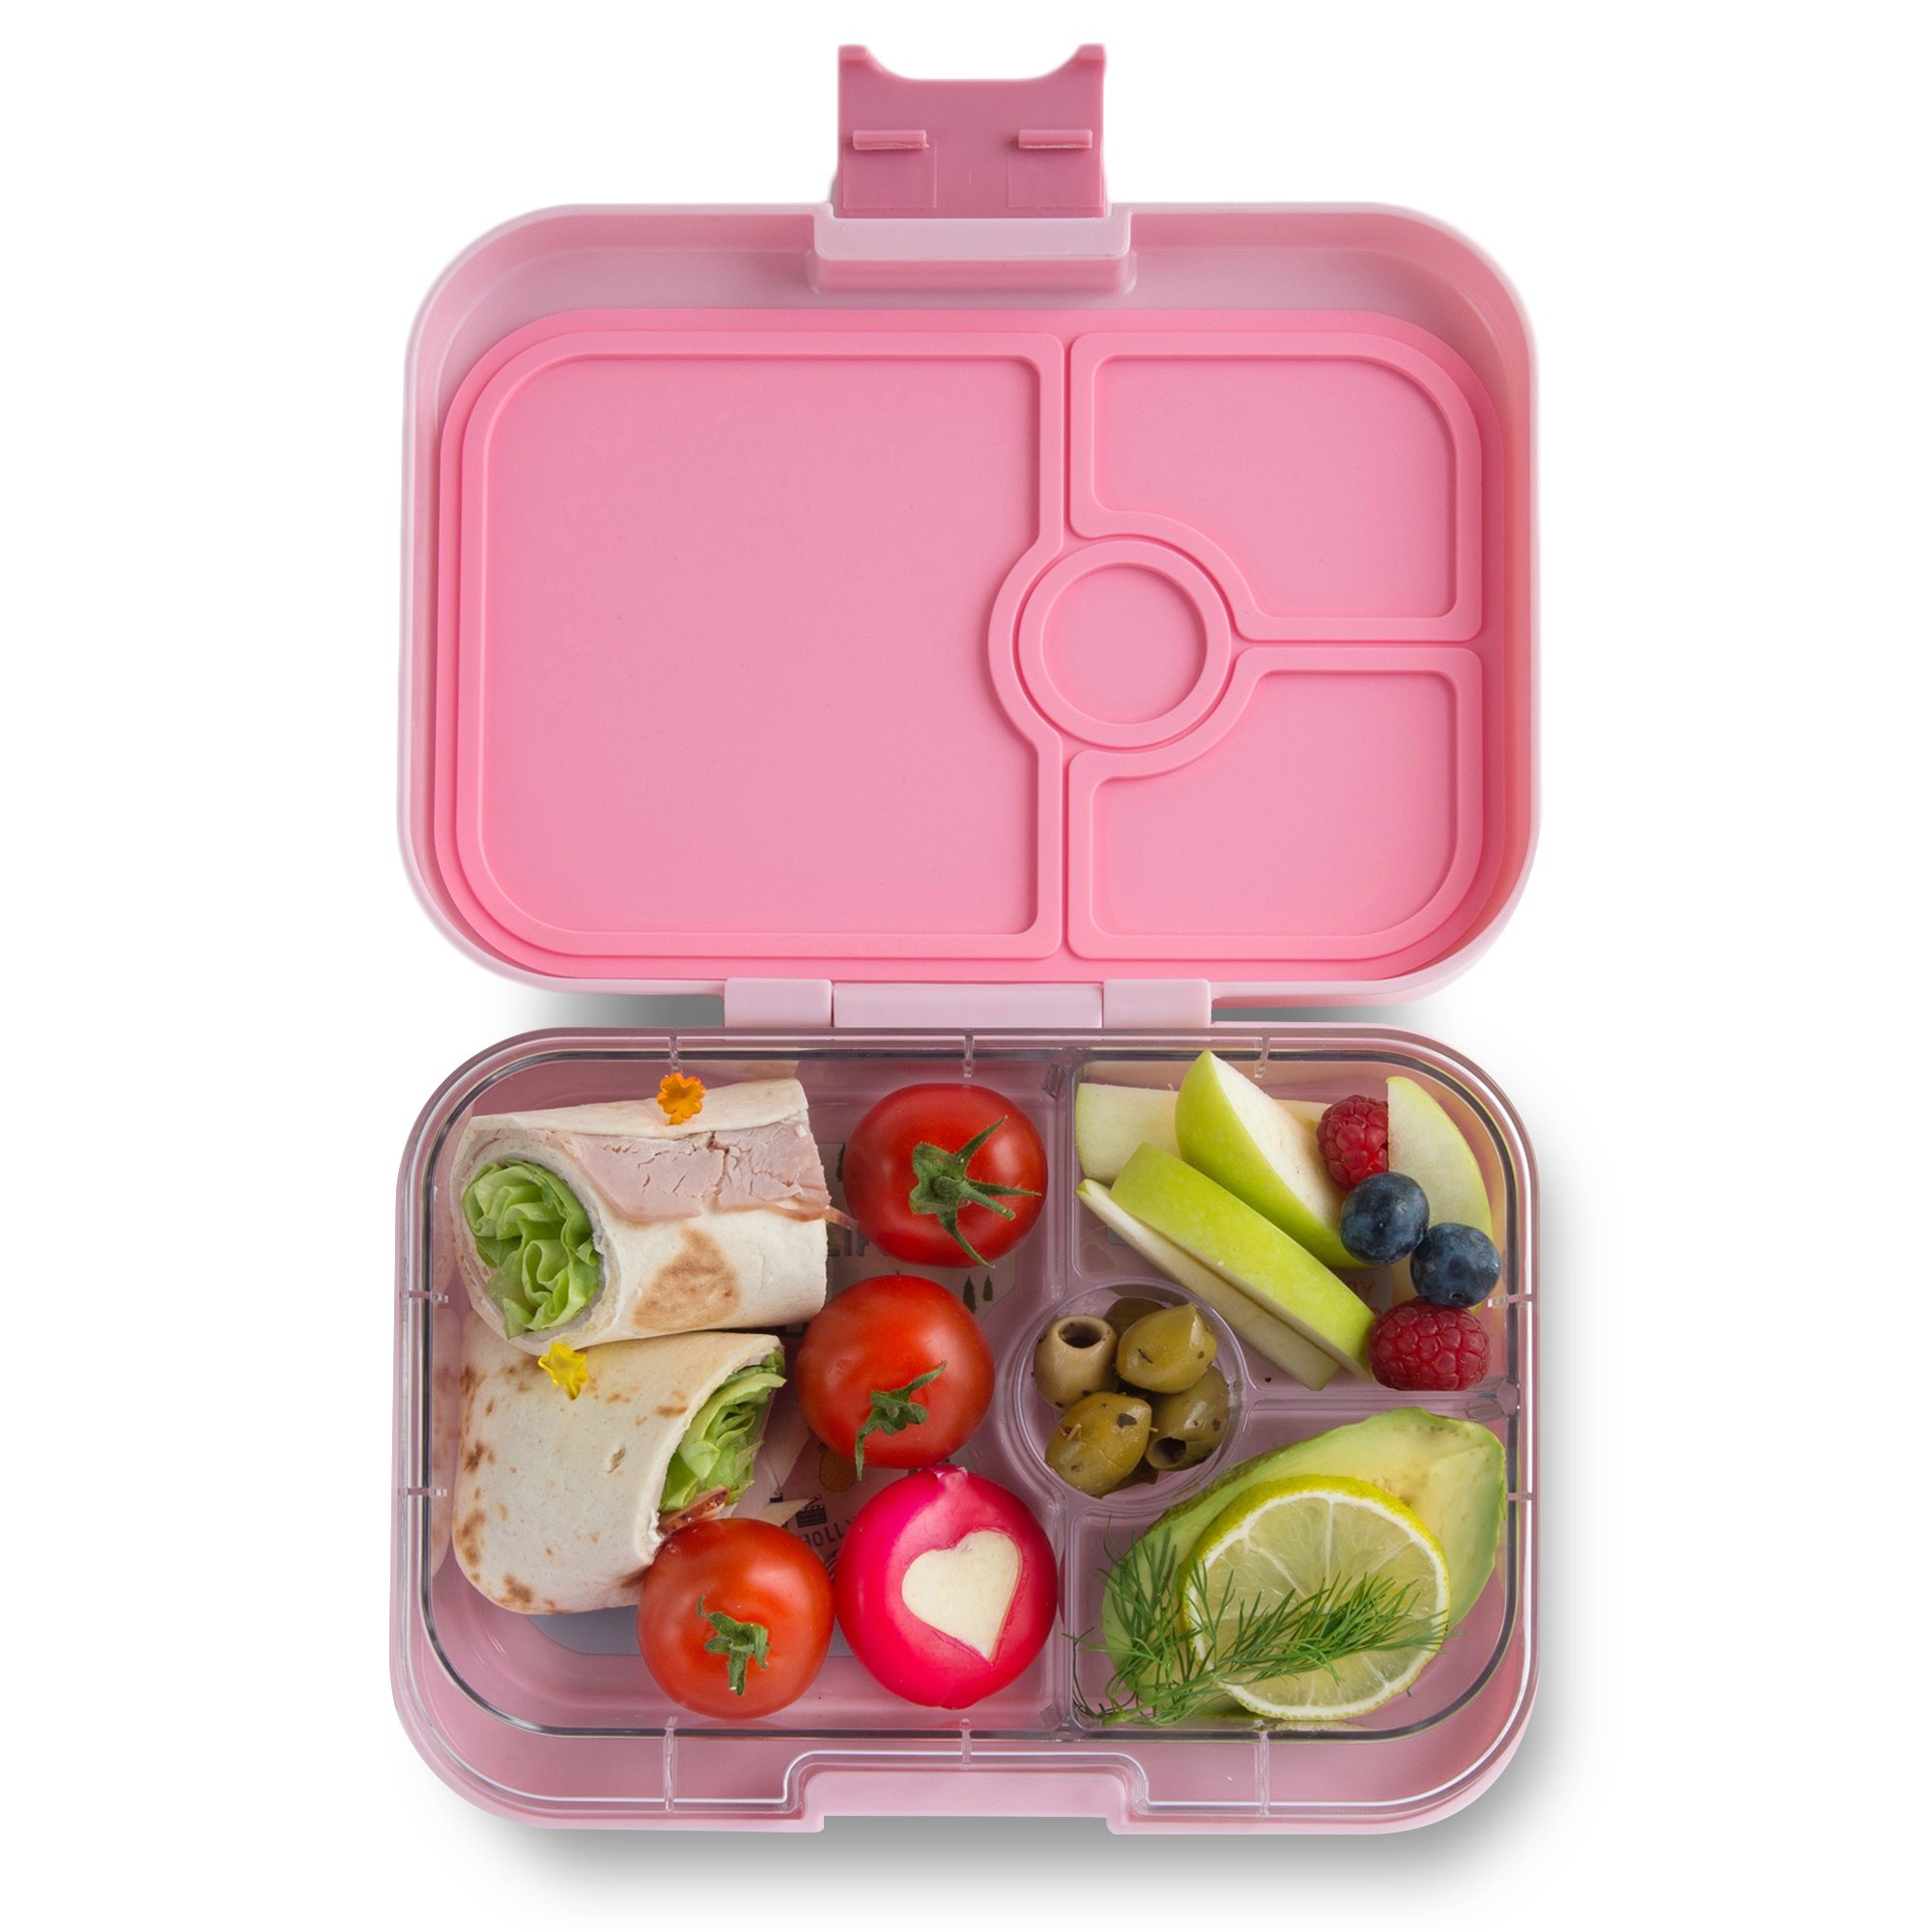 YUMBOX Panino (Hollywood Pink) Leakproof Bento Lunch Box Container for Kids & Adults; Yumbox, Yumbox Panino, leakproof bento, lunchbox portion control, snack box, box, lunch, Bentgo bento box, school